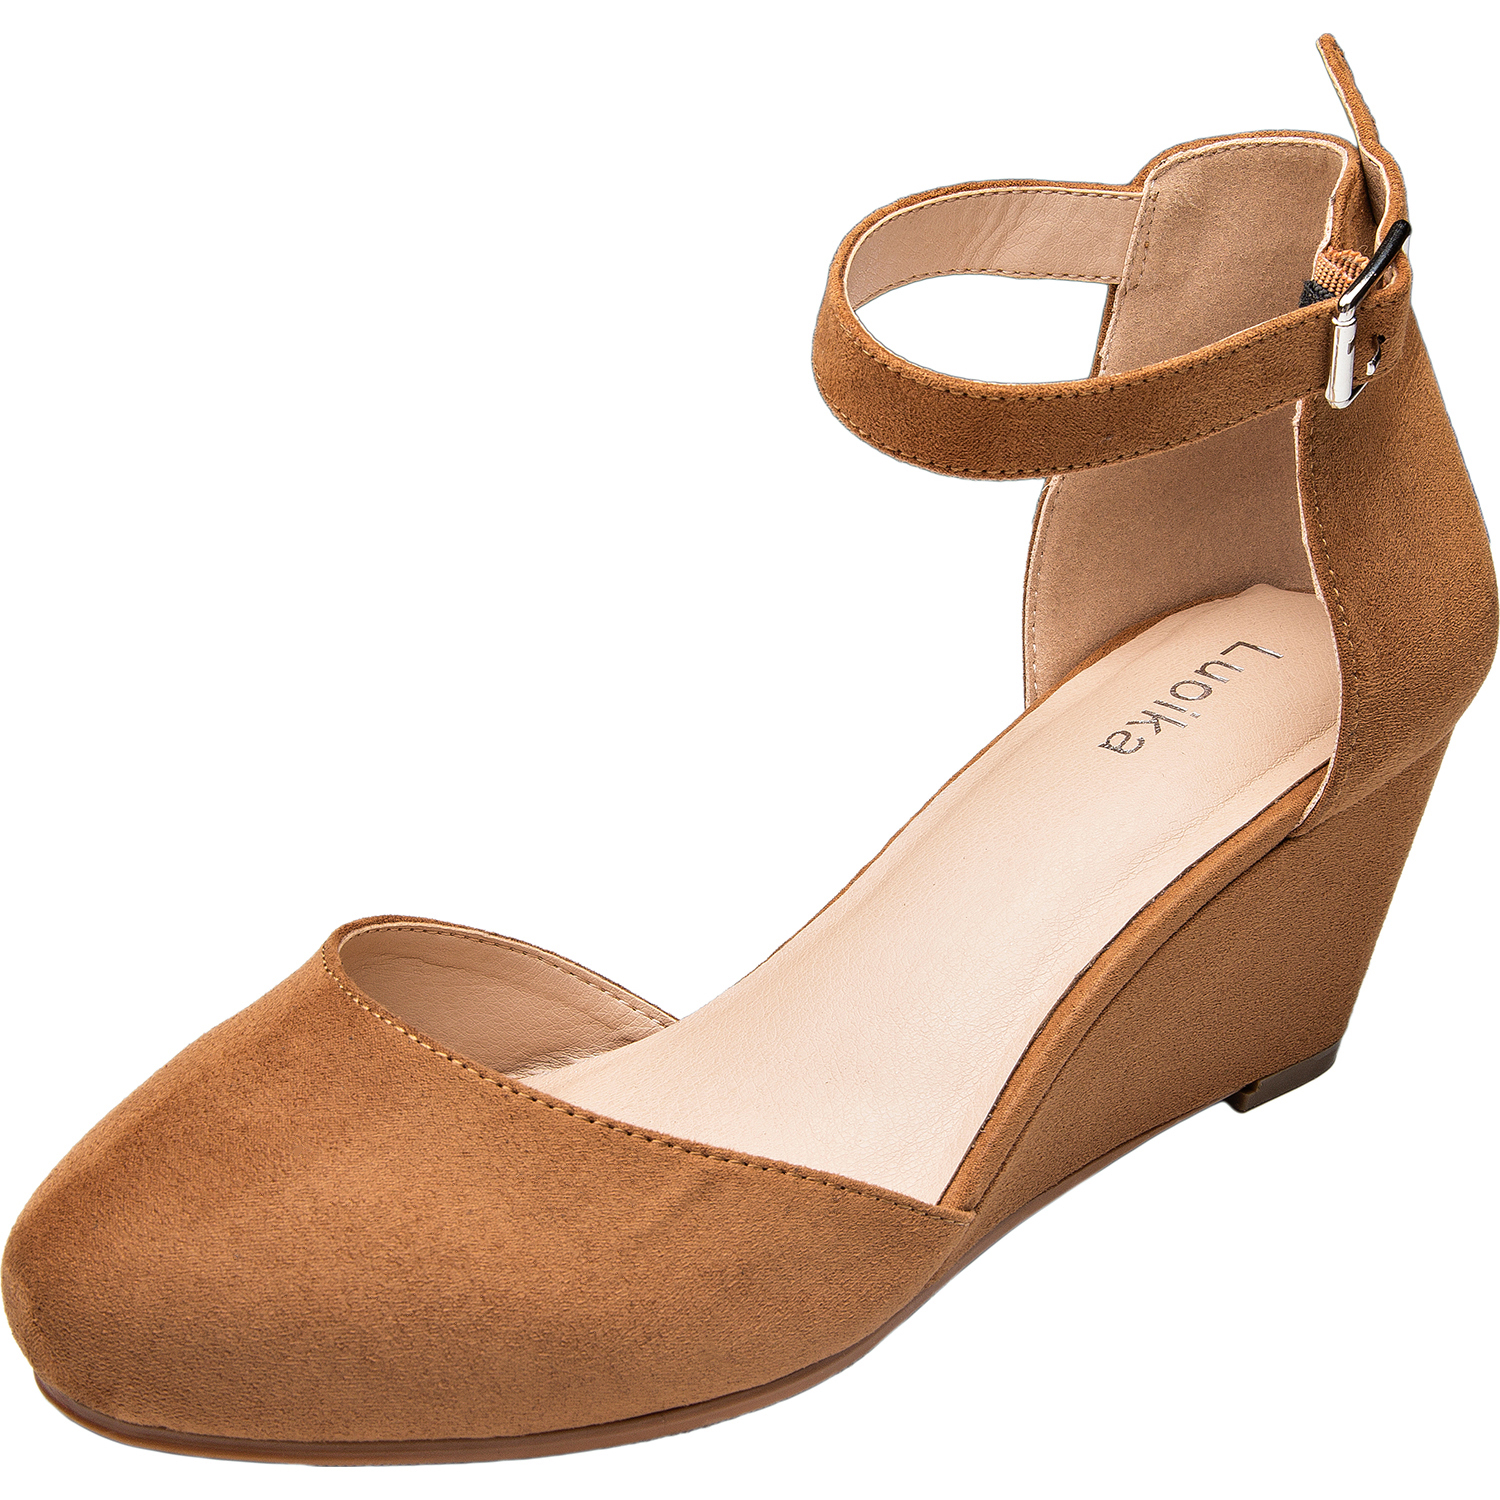 b2c3b1522f1 Us luoika womens wide width mini wedges comfortable mid low heel ankle  buckle strap plus size · Download Image